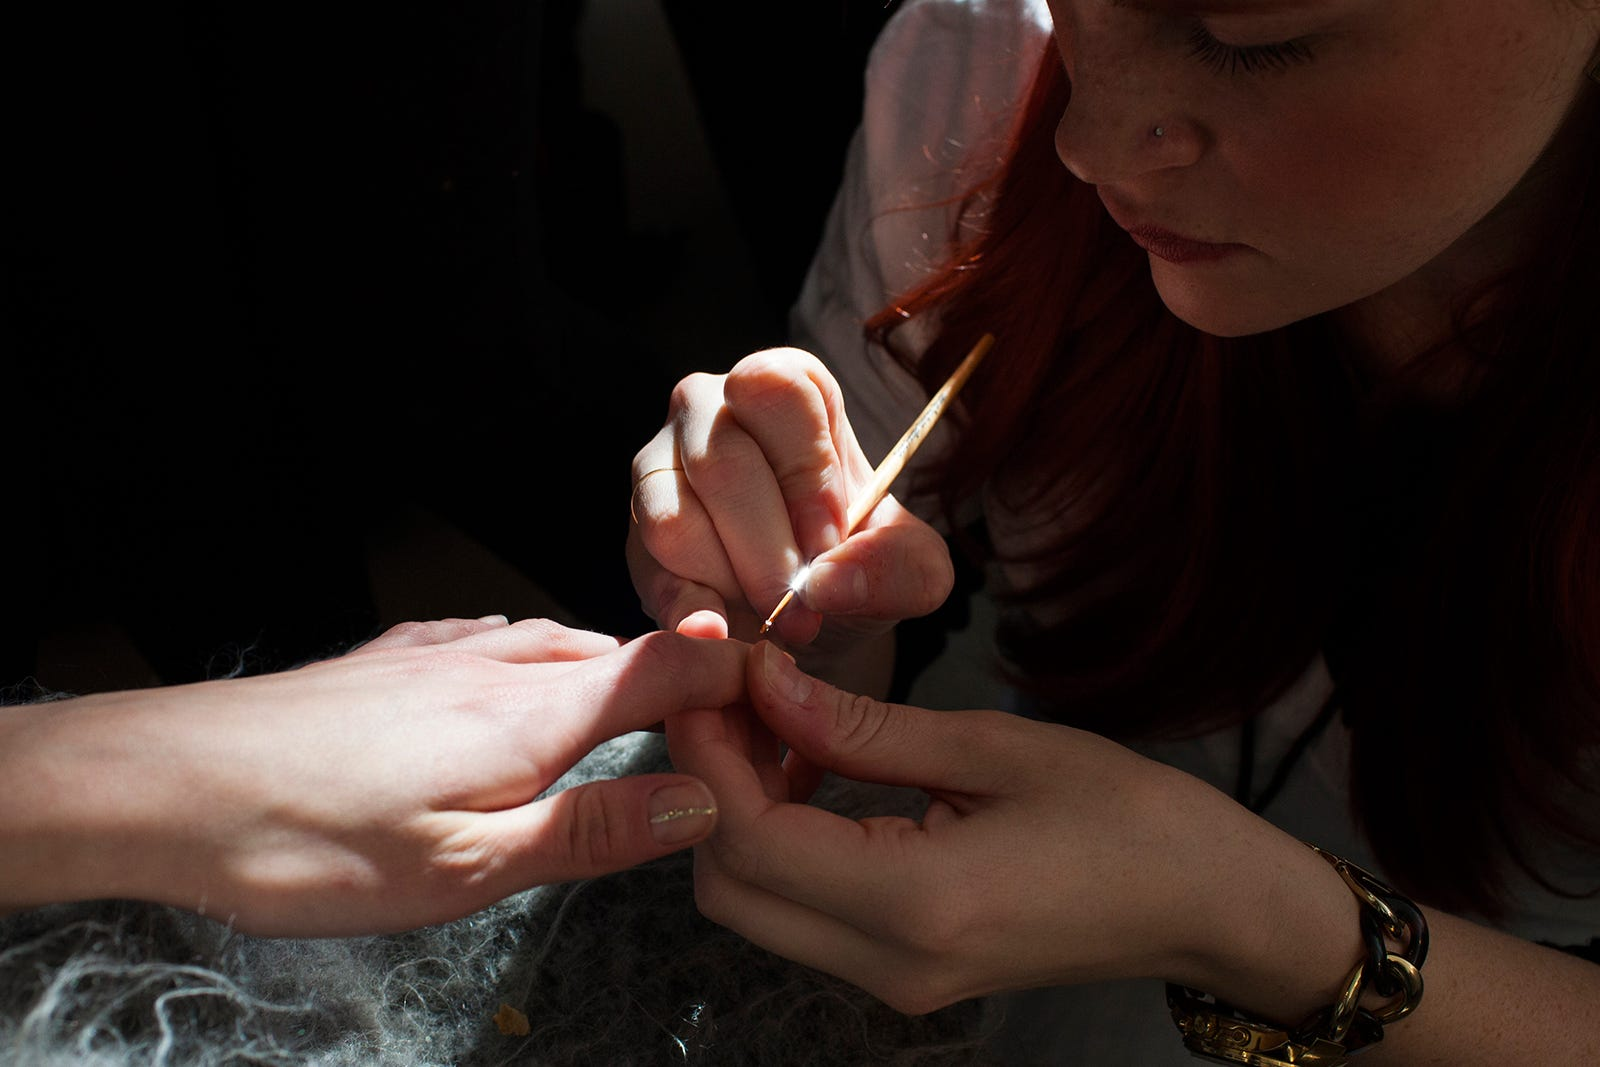 nyfw 2015 fall winter nails backstage close up candid